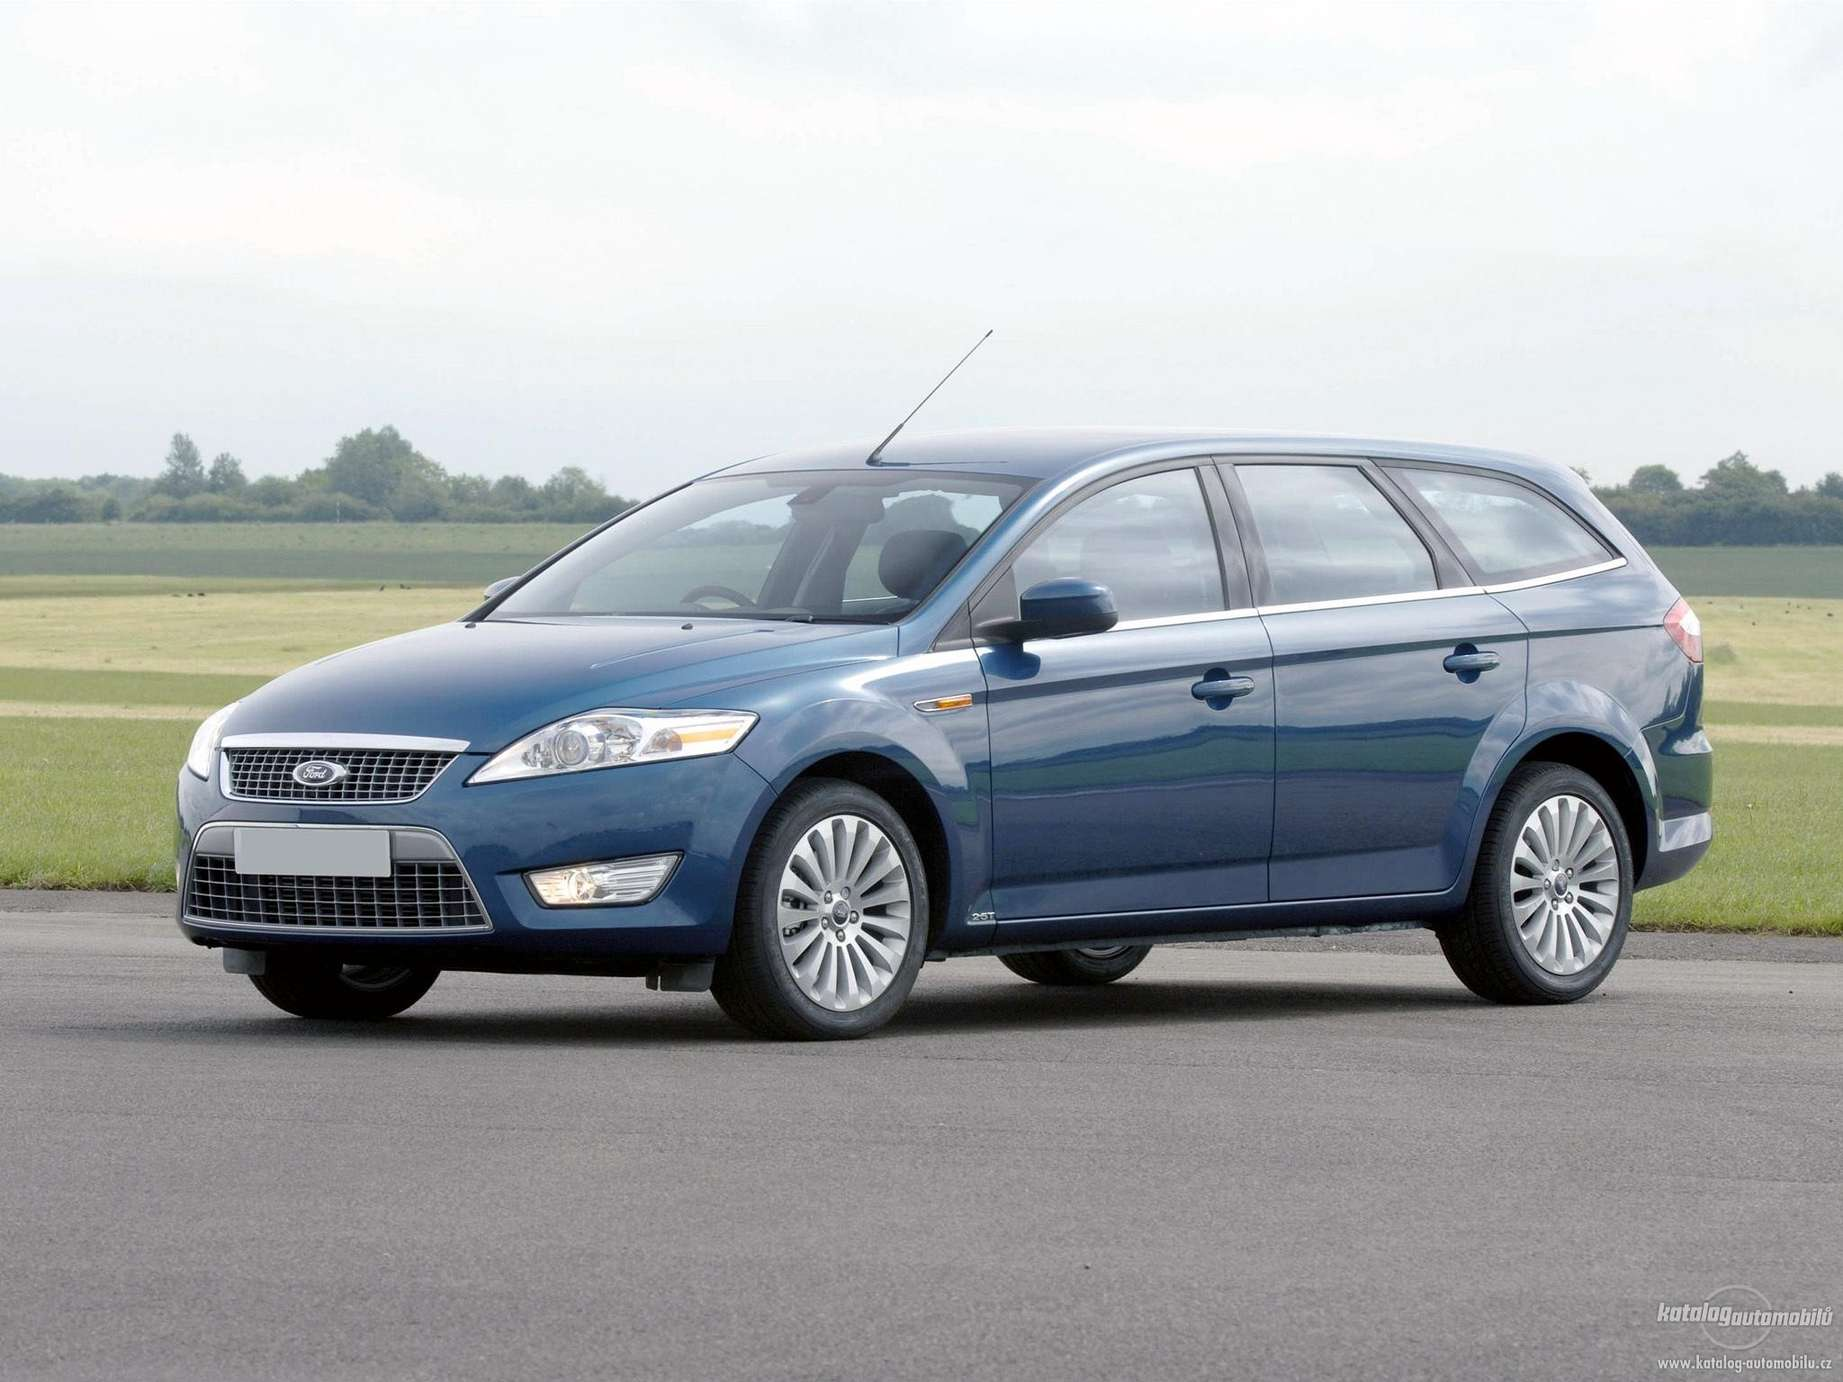 Ford Mondeo Turnier #8552447